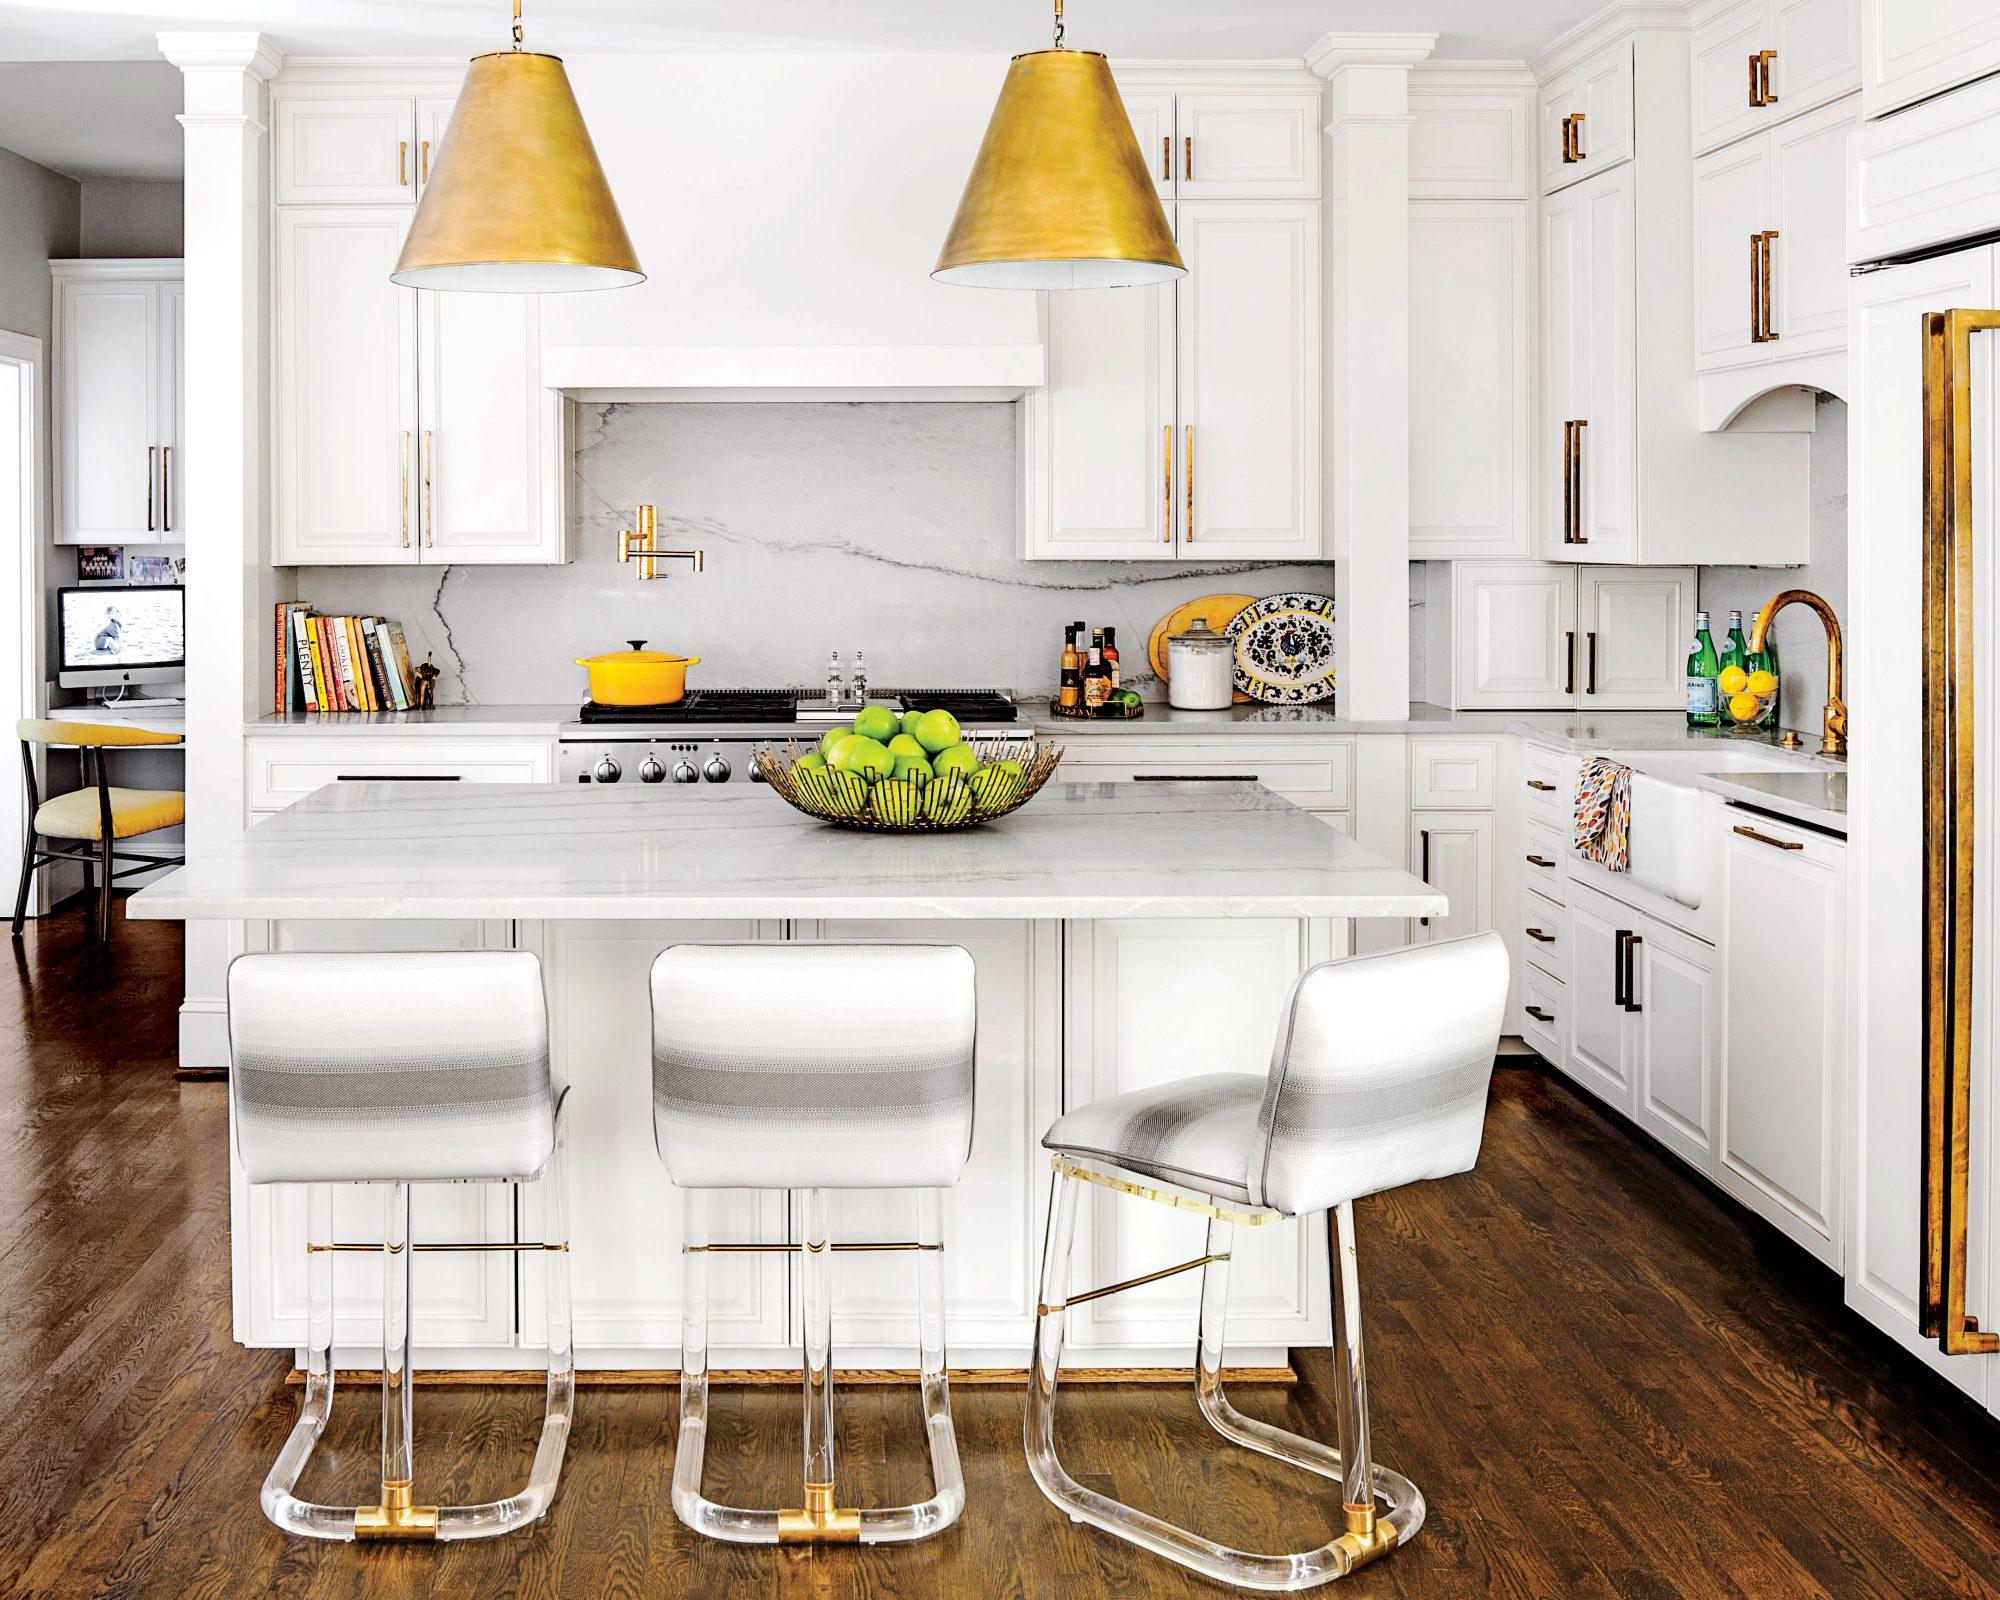 White Kitchens By Design all-time favorite white kitchens - southern living